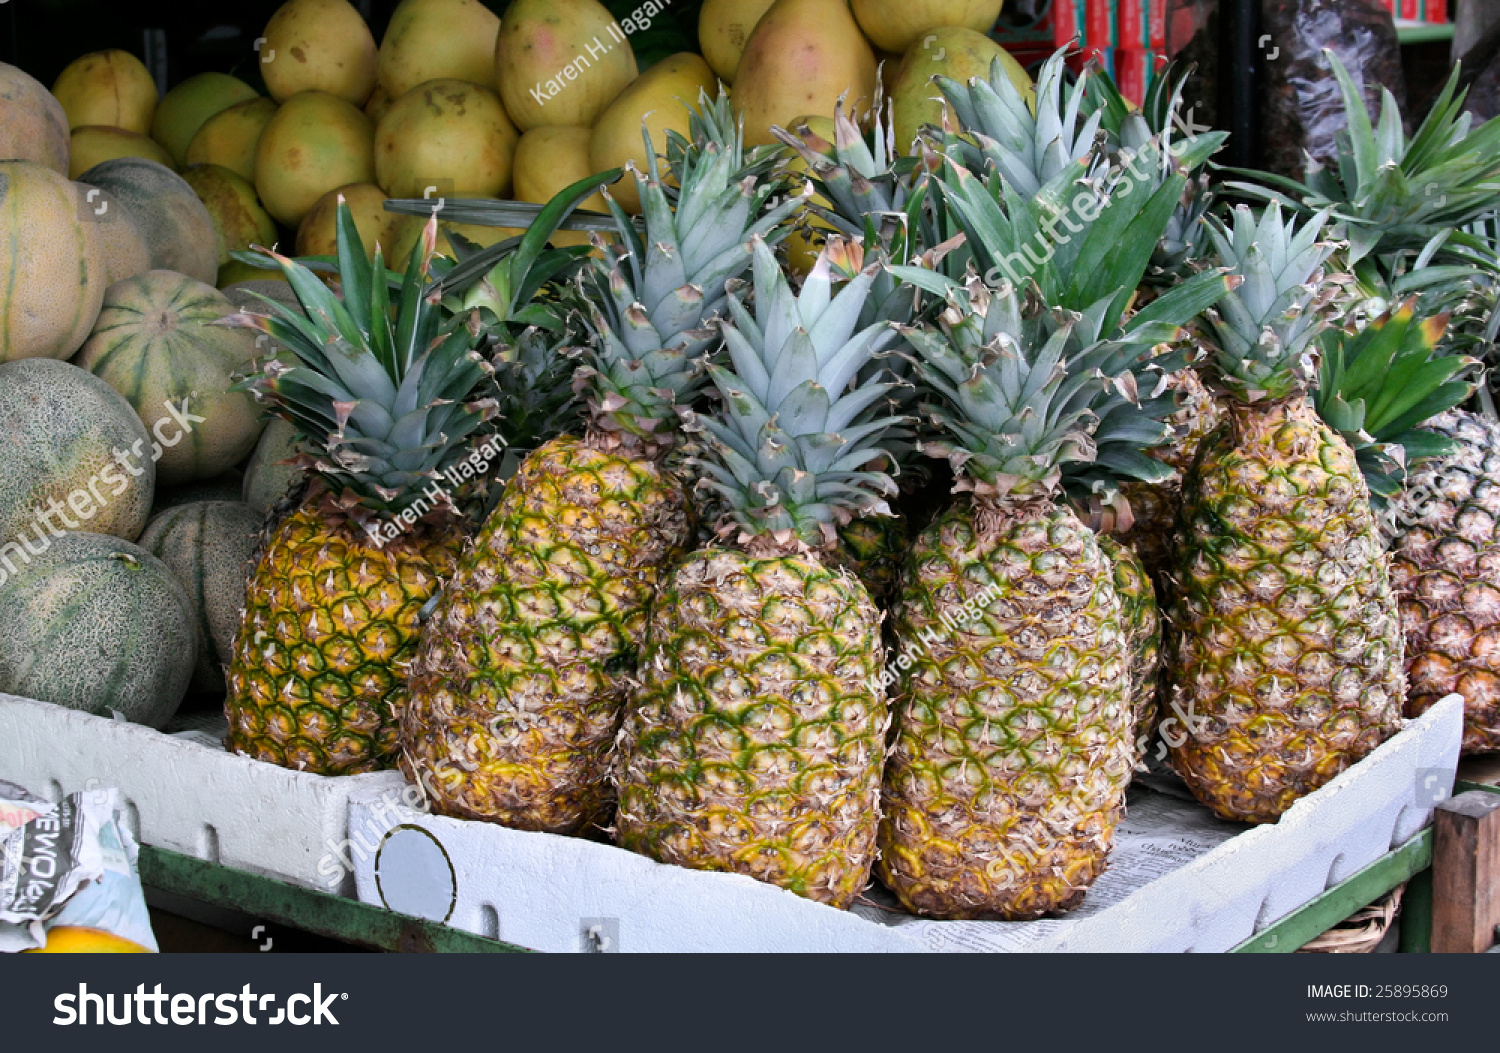 how to know when a fresh pineapple is ripe